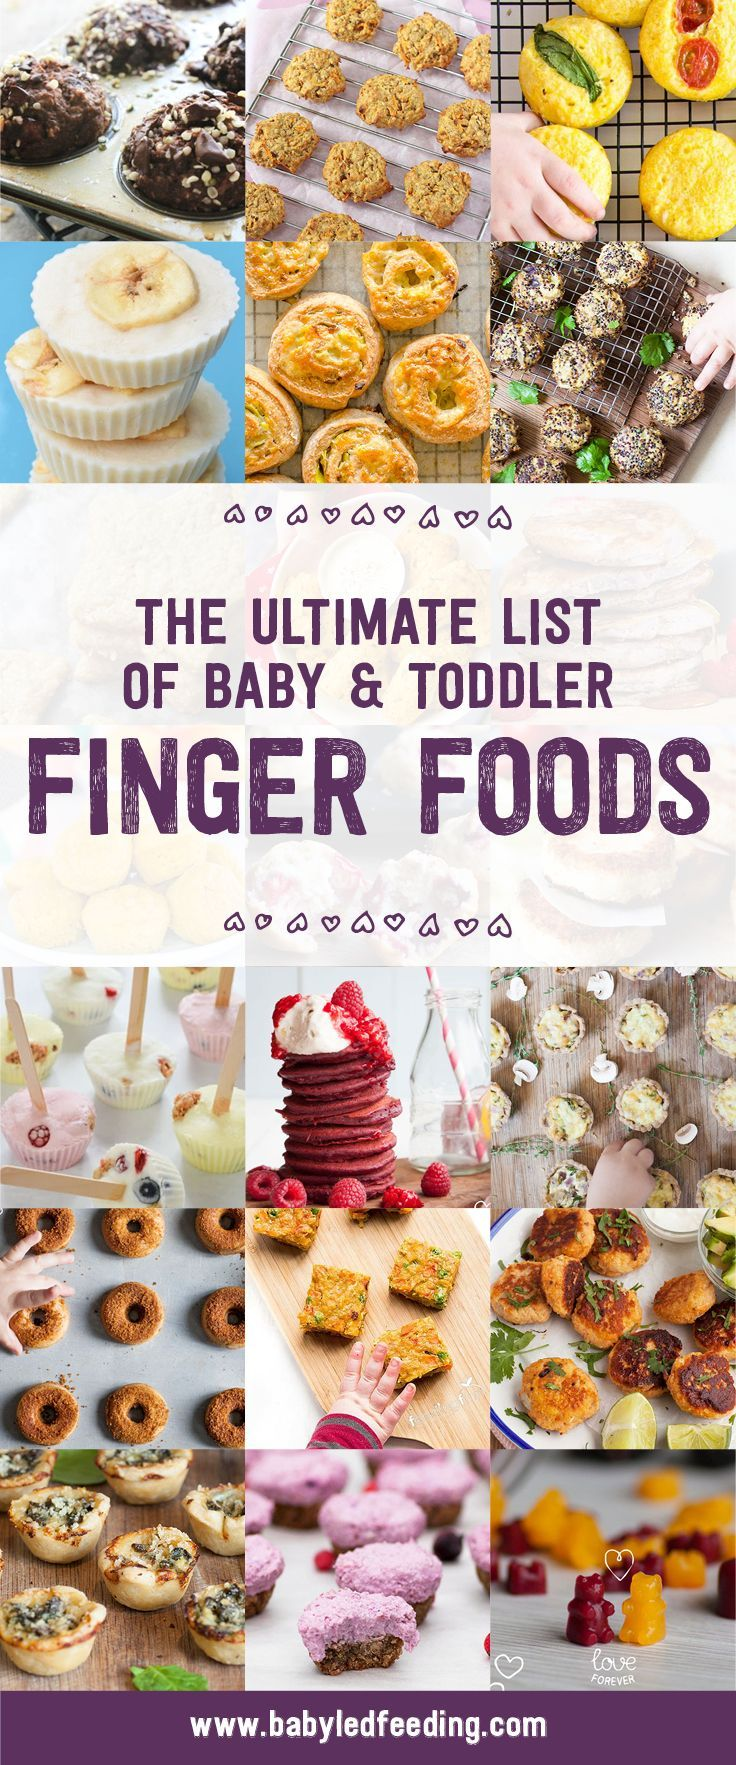 The ultimate list of baby toddler finger foods baby led feeding the ultimate list of baby and toddler finger foods homemade baby finger food recipes and forumfinder Image collections